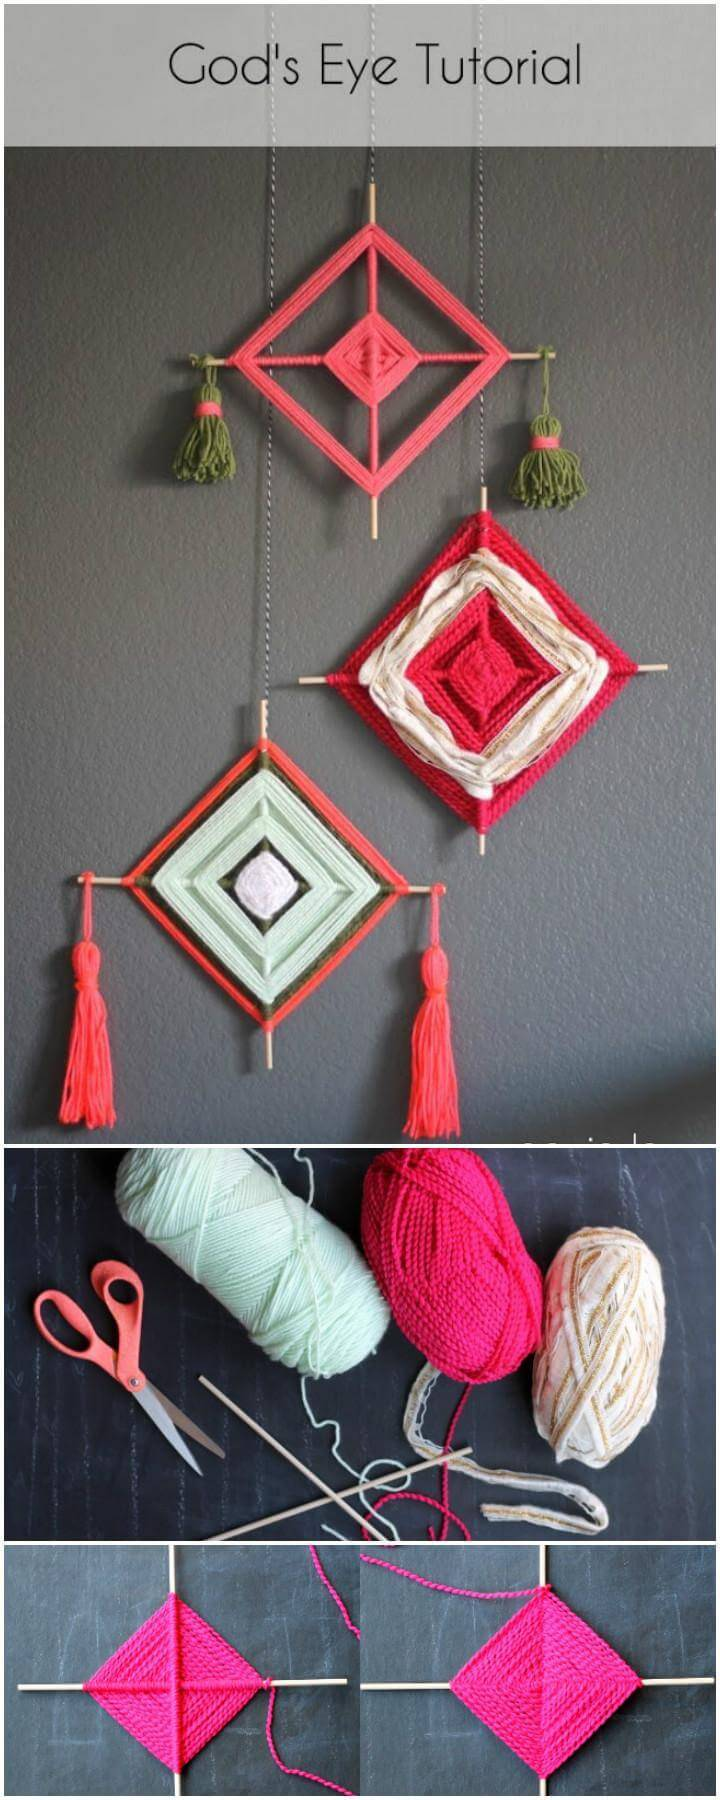 DIY God's Eye Camp Craft